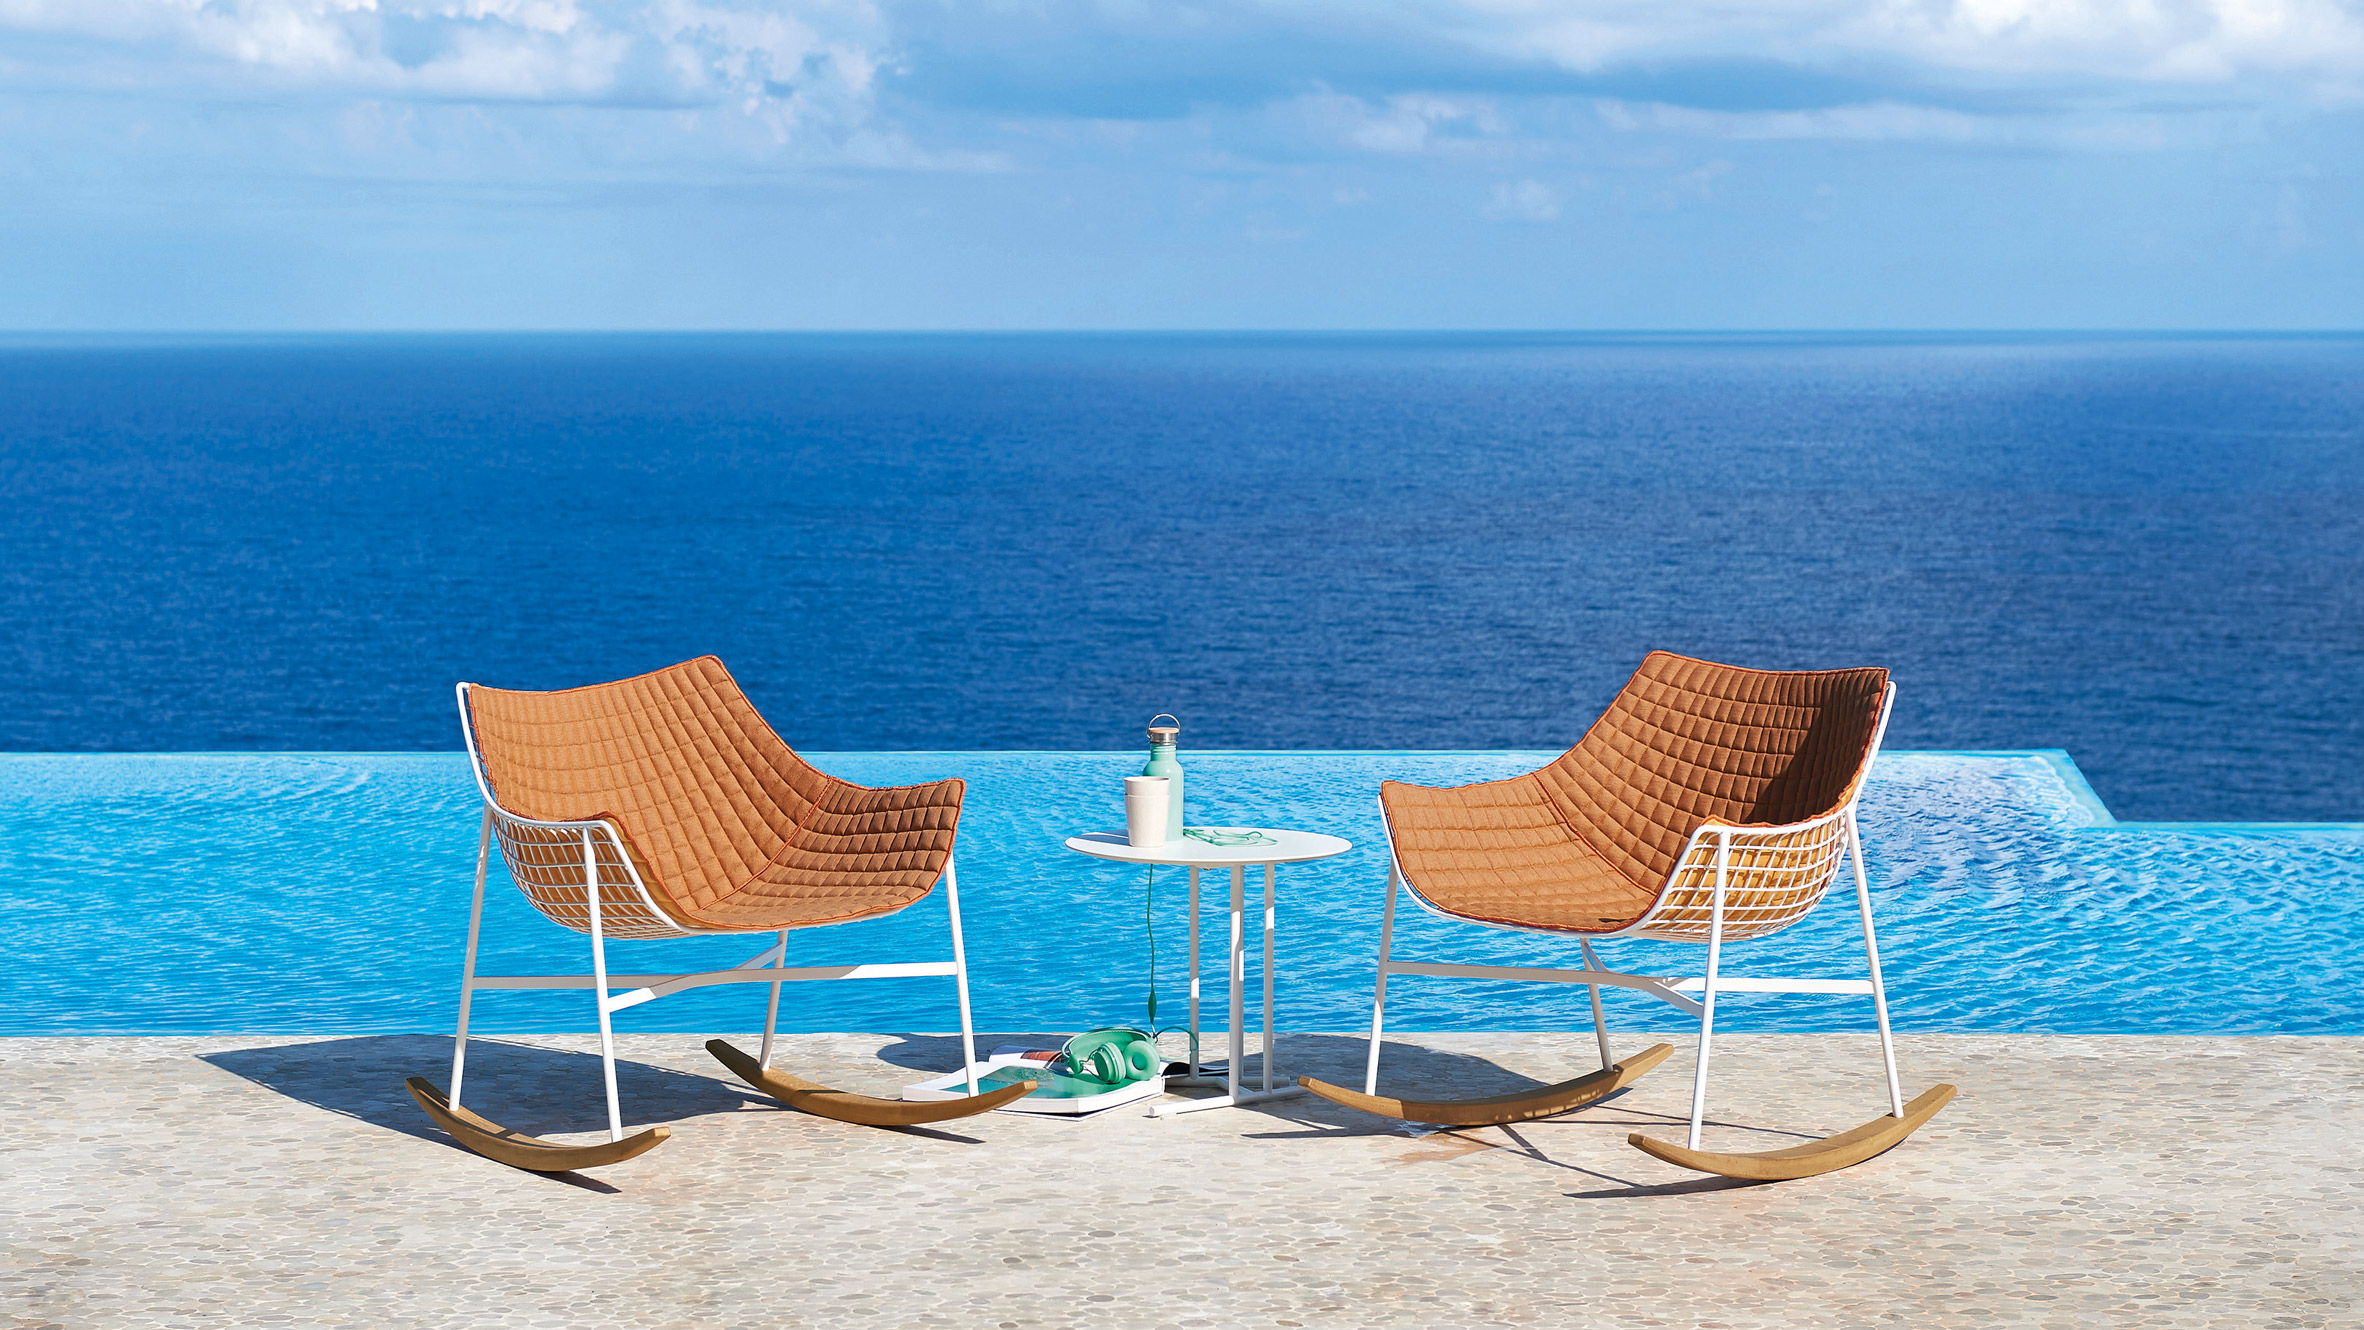 Summerset Patio Furniture.Varaschin Adds Outdoor Rocking Chair To Summerset Collection